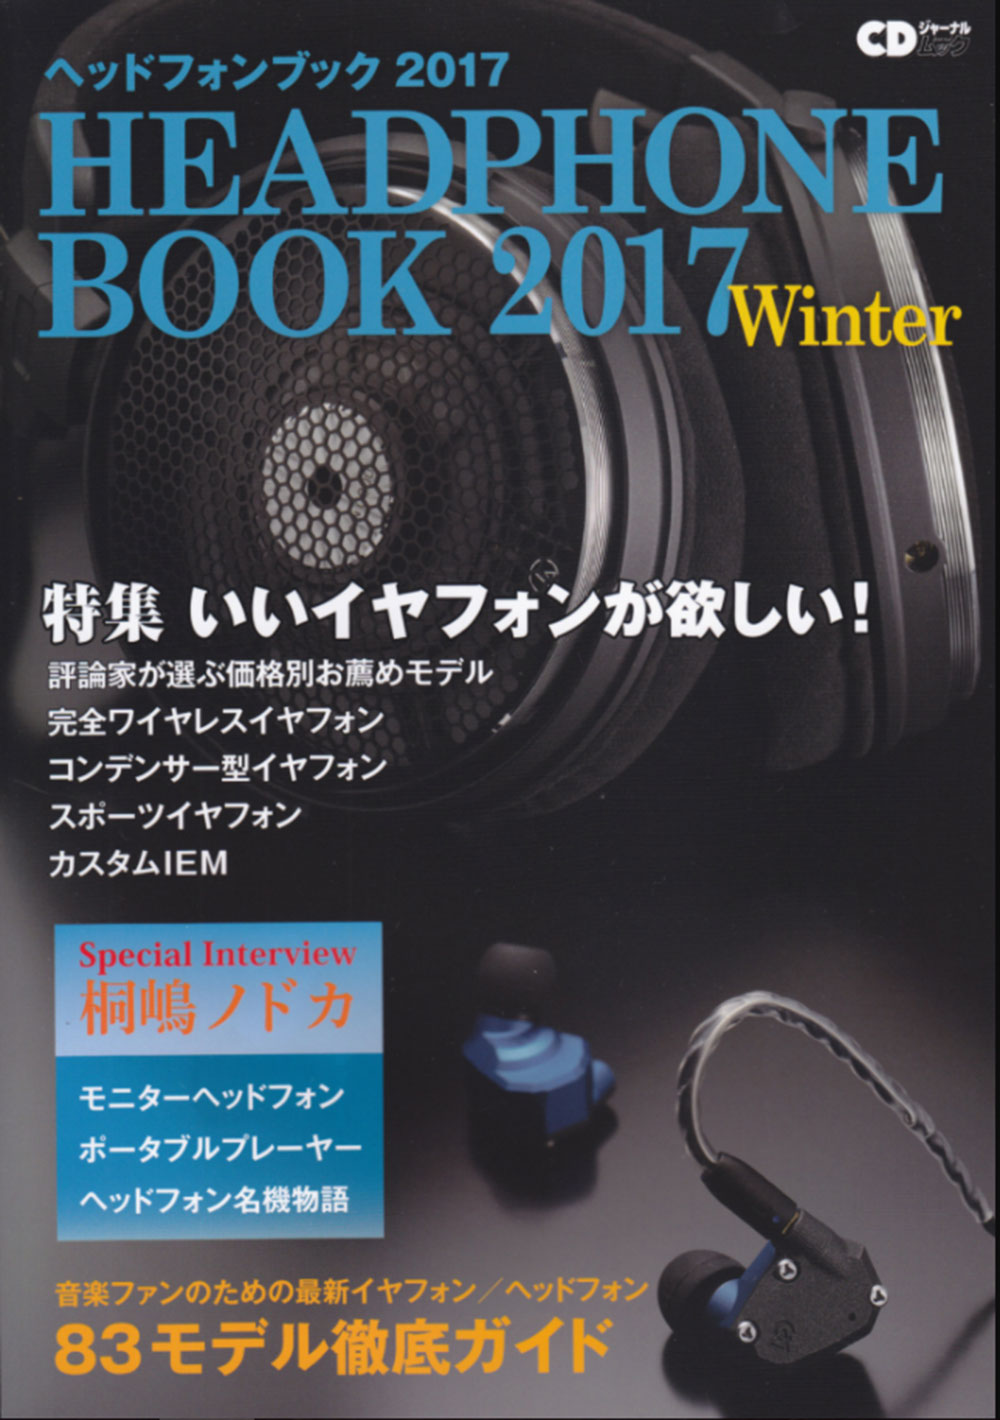 Headphone book 2017